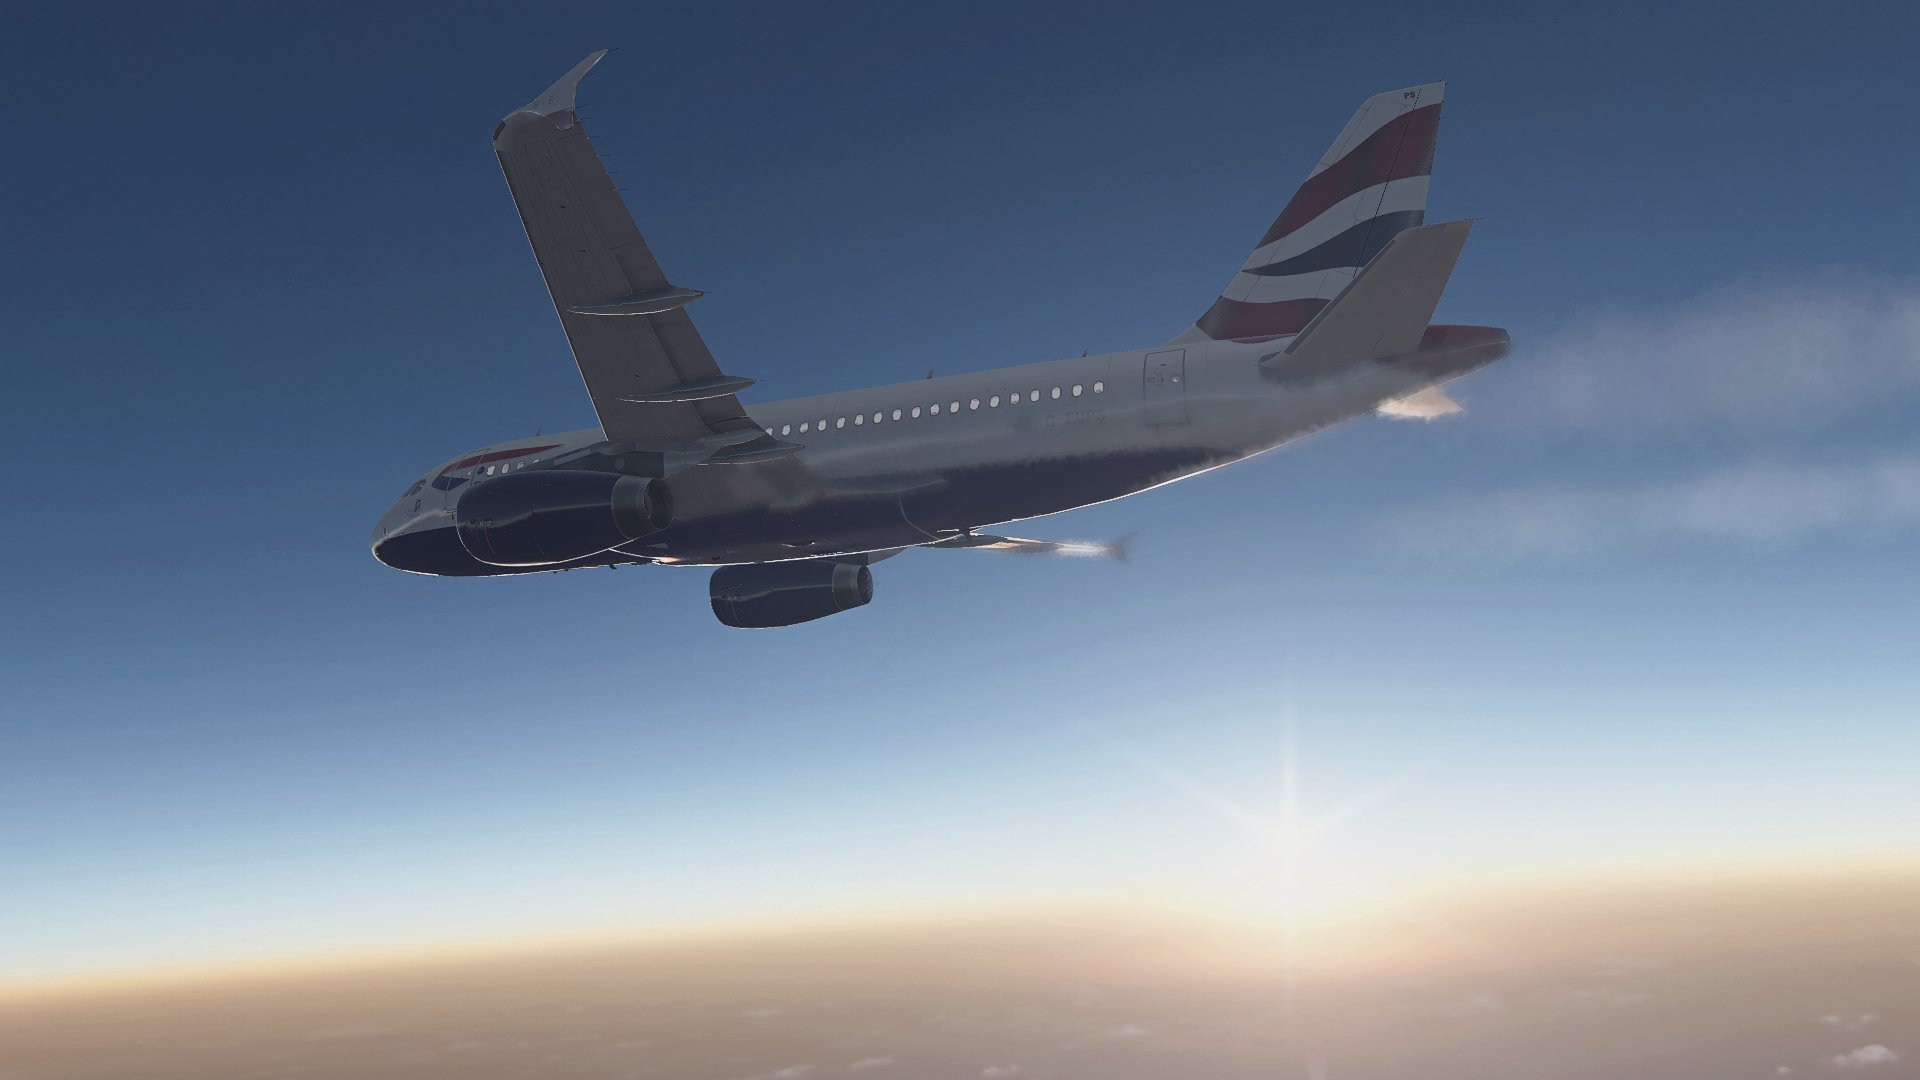 X-Plane Screenshot 2019.06.07 - 21.19.05.73.png